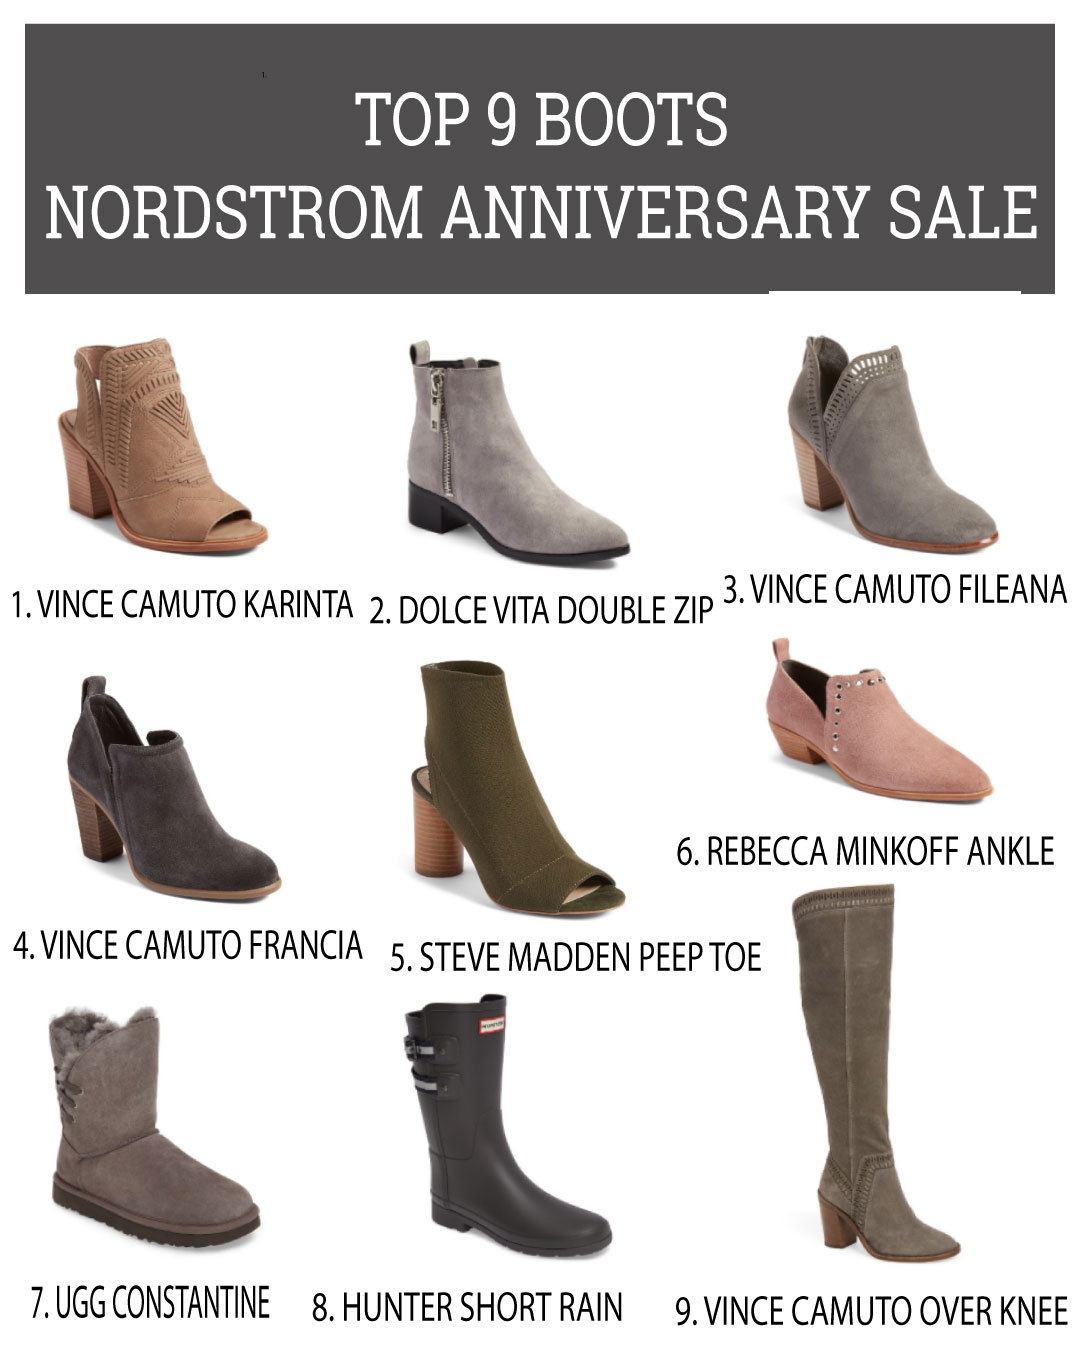 135a101108 2017 Nordstrom Anniversary Sale Best Boots- Life By Lee